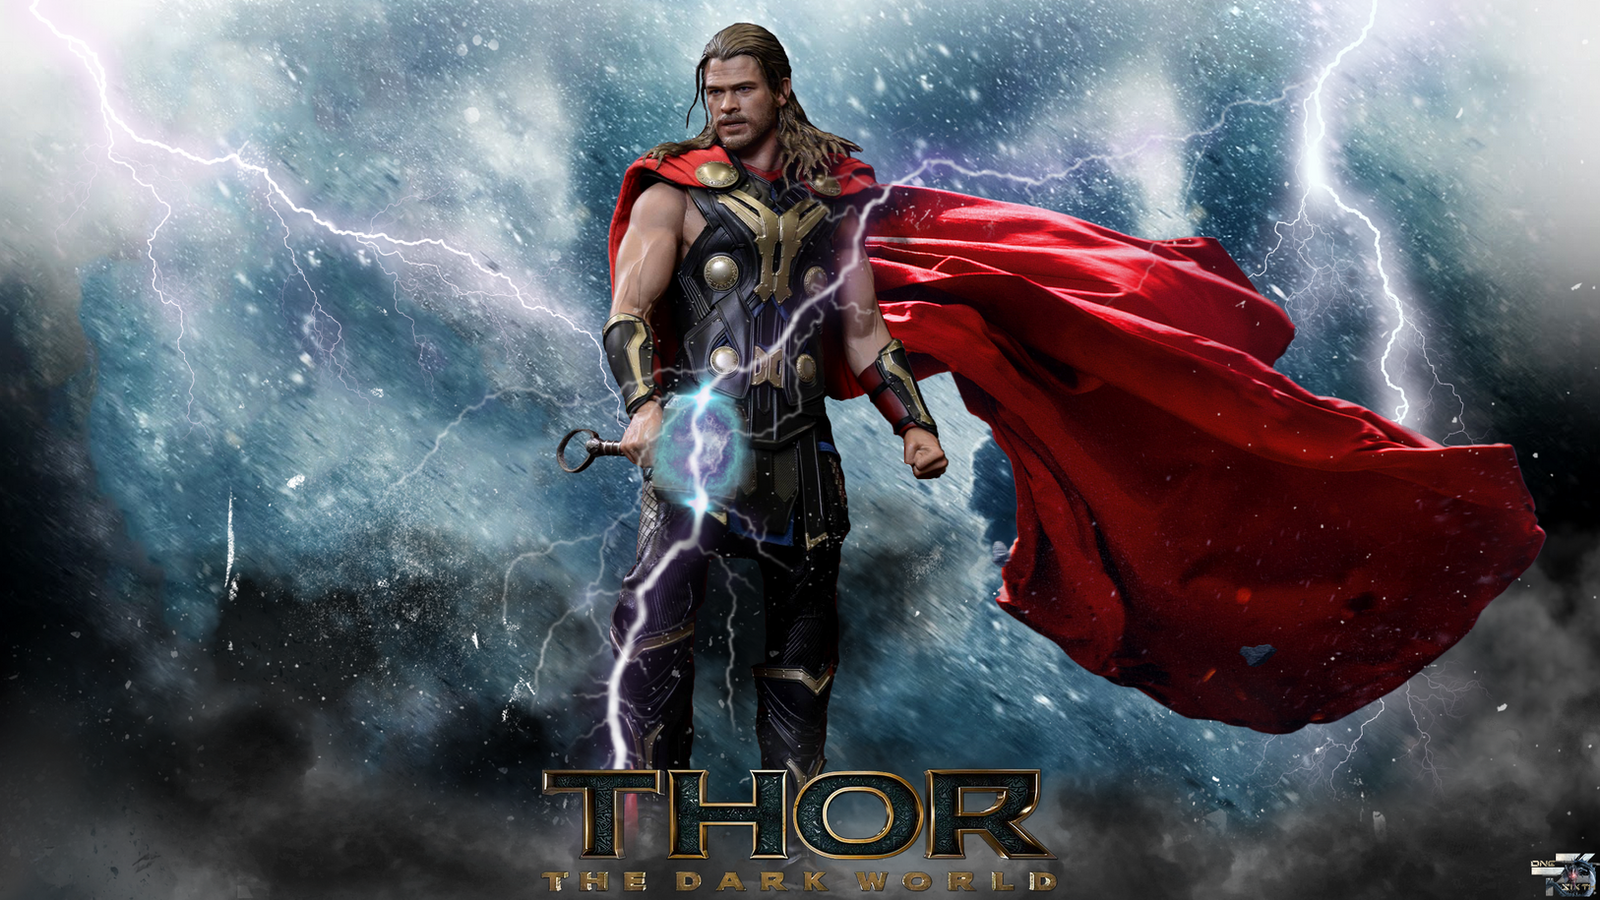 thor full movie hd free download